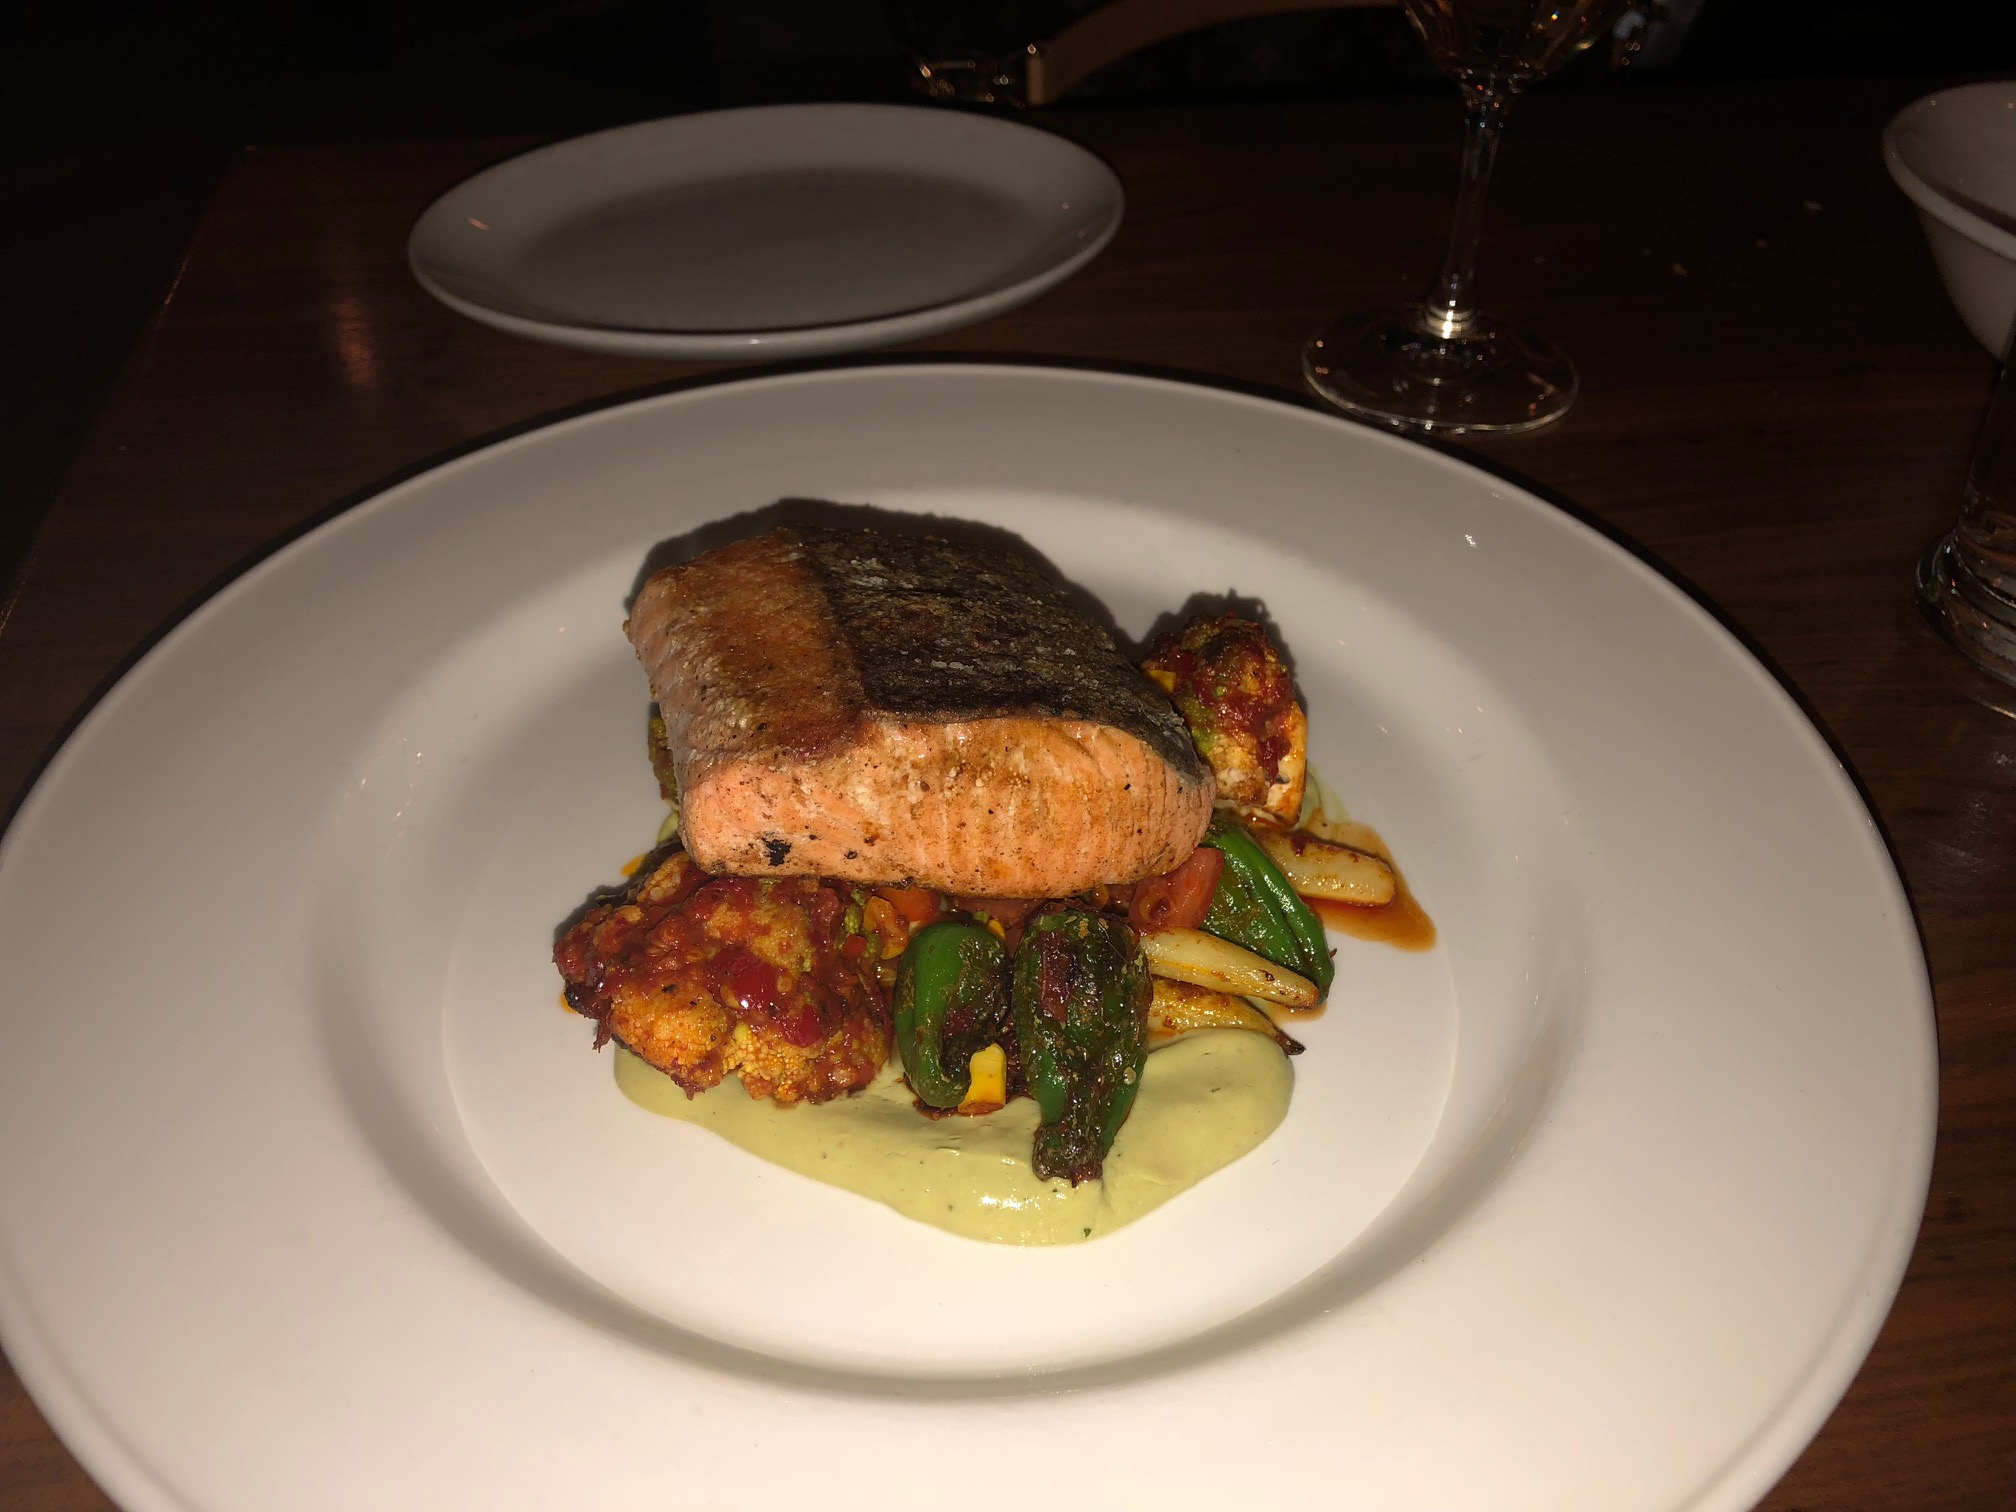 Here's a pic of my wife's order…the Wild King Salmon a la Plancha with harissa, summer succotash, creamy poblano puree. Yum! Image Credit: Dan Meyers